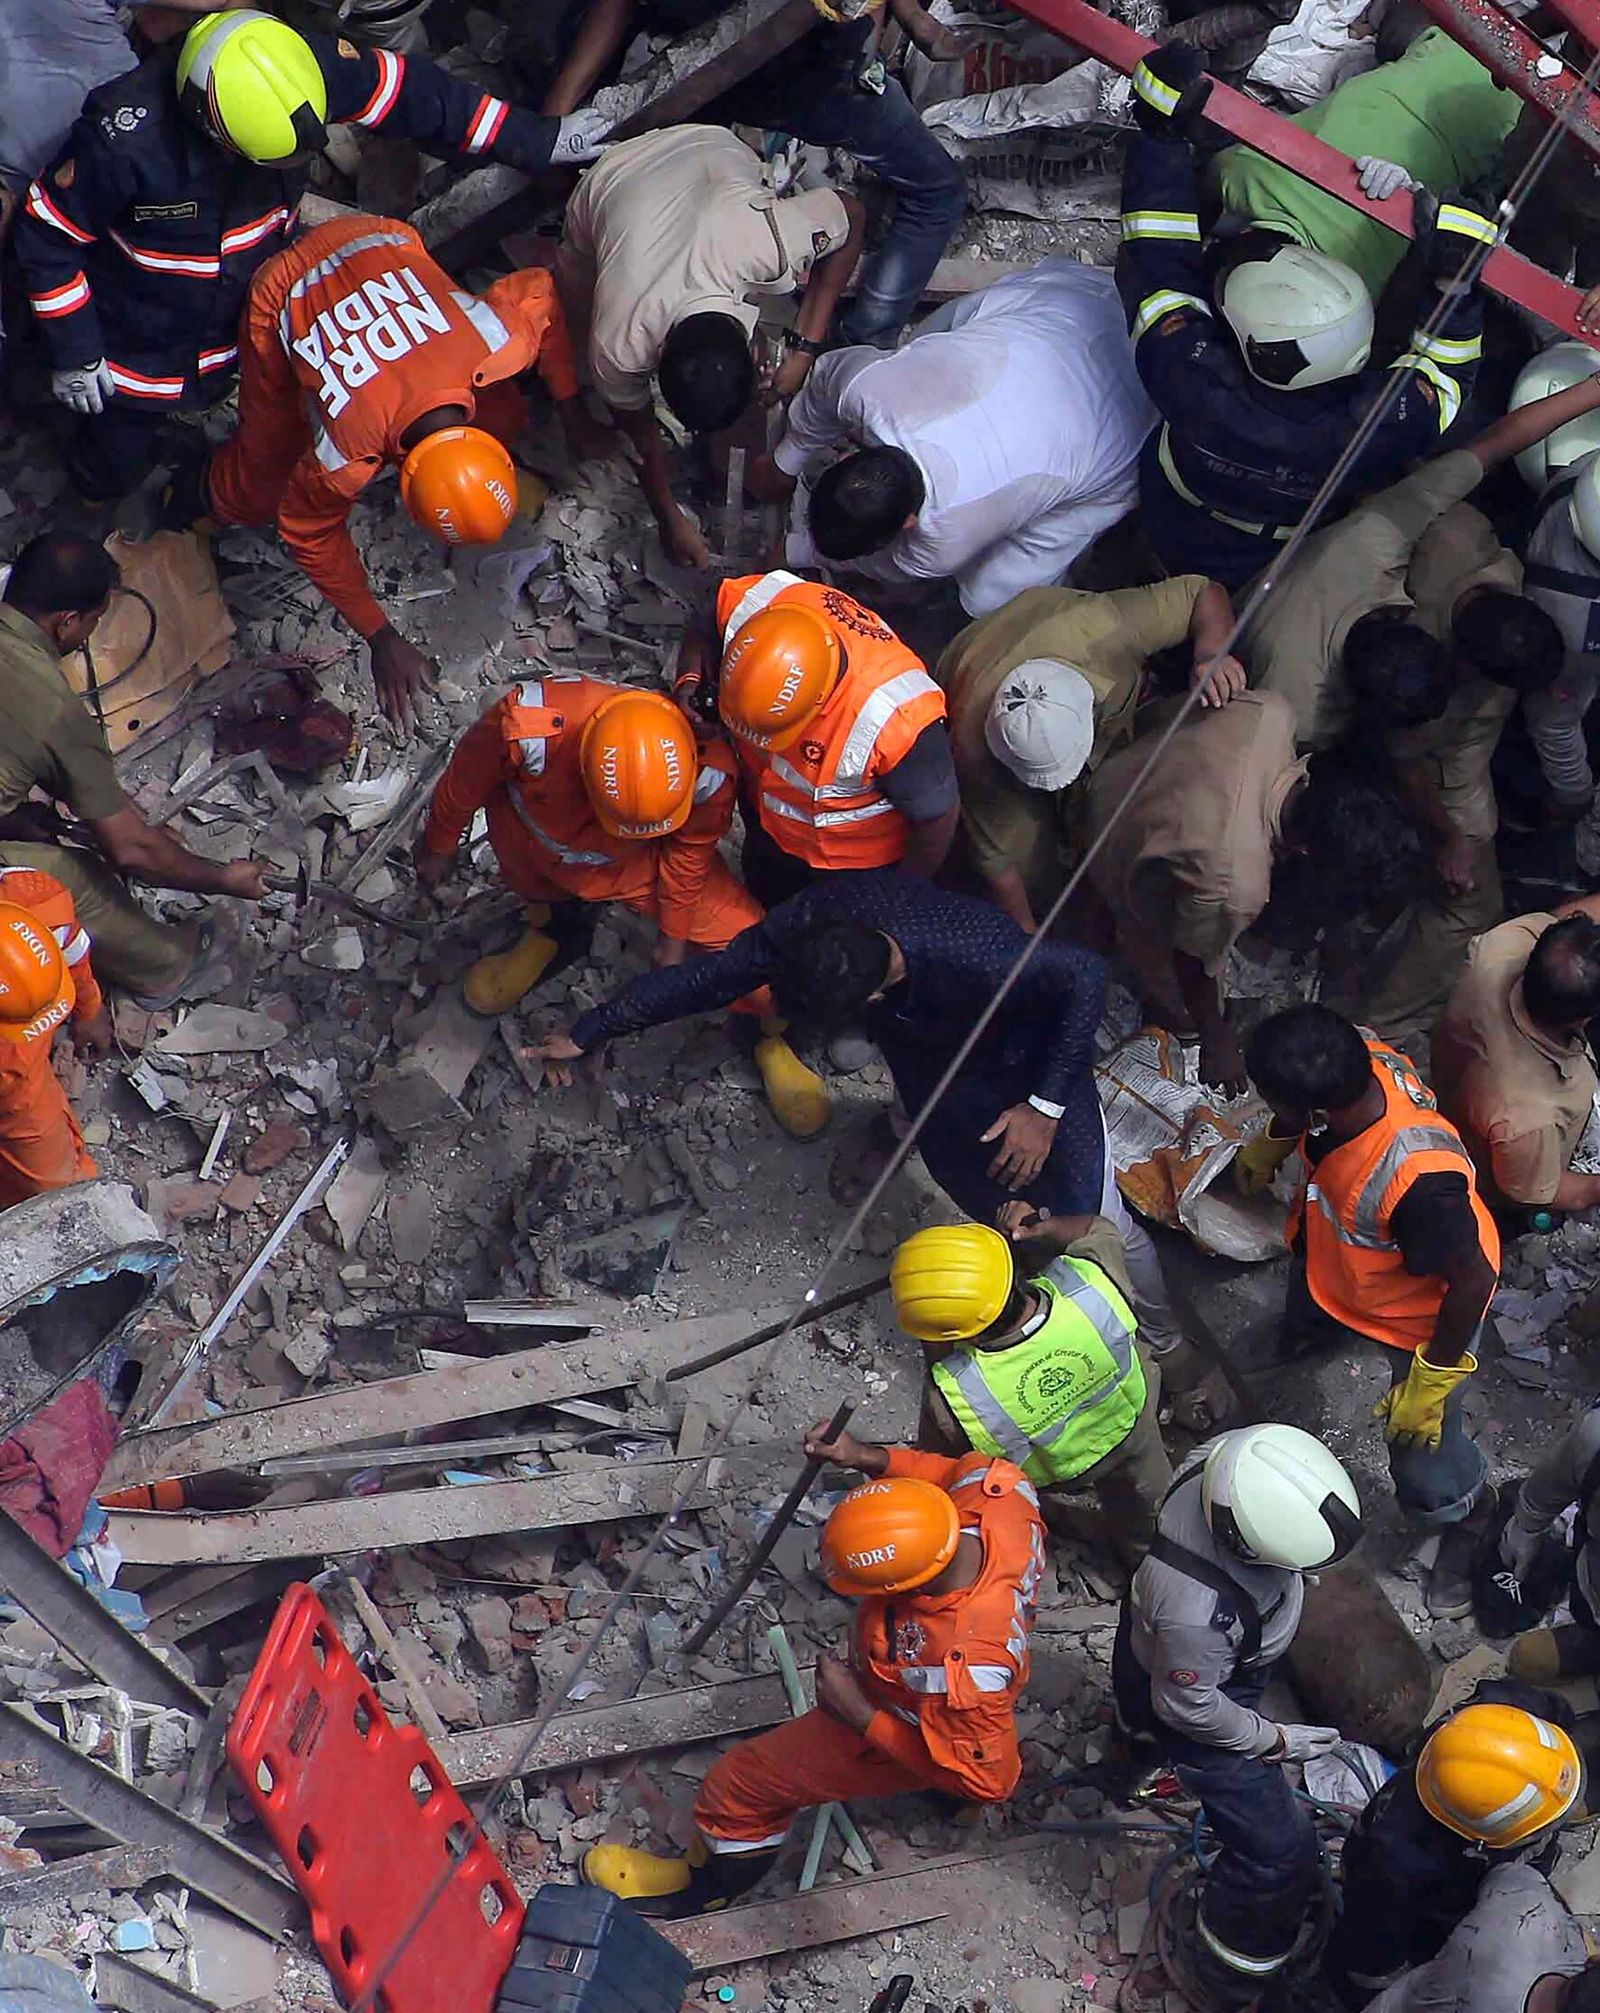 Rescuers work at the site of a building that collapsed in Mumbai, India, Tuesday, July 16, 2019. nt capital, and several people were feared trapped in the rubble, an official said. (AP Photo/Rajanish Kakade)